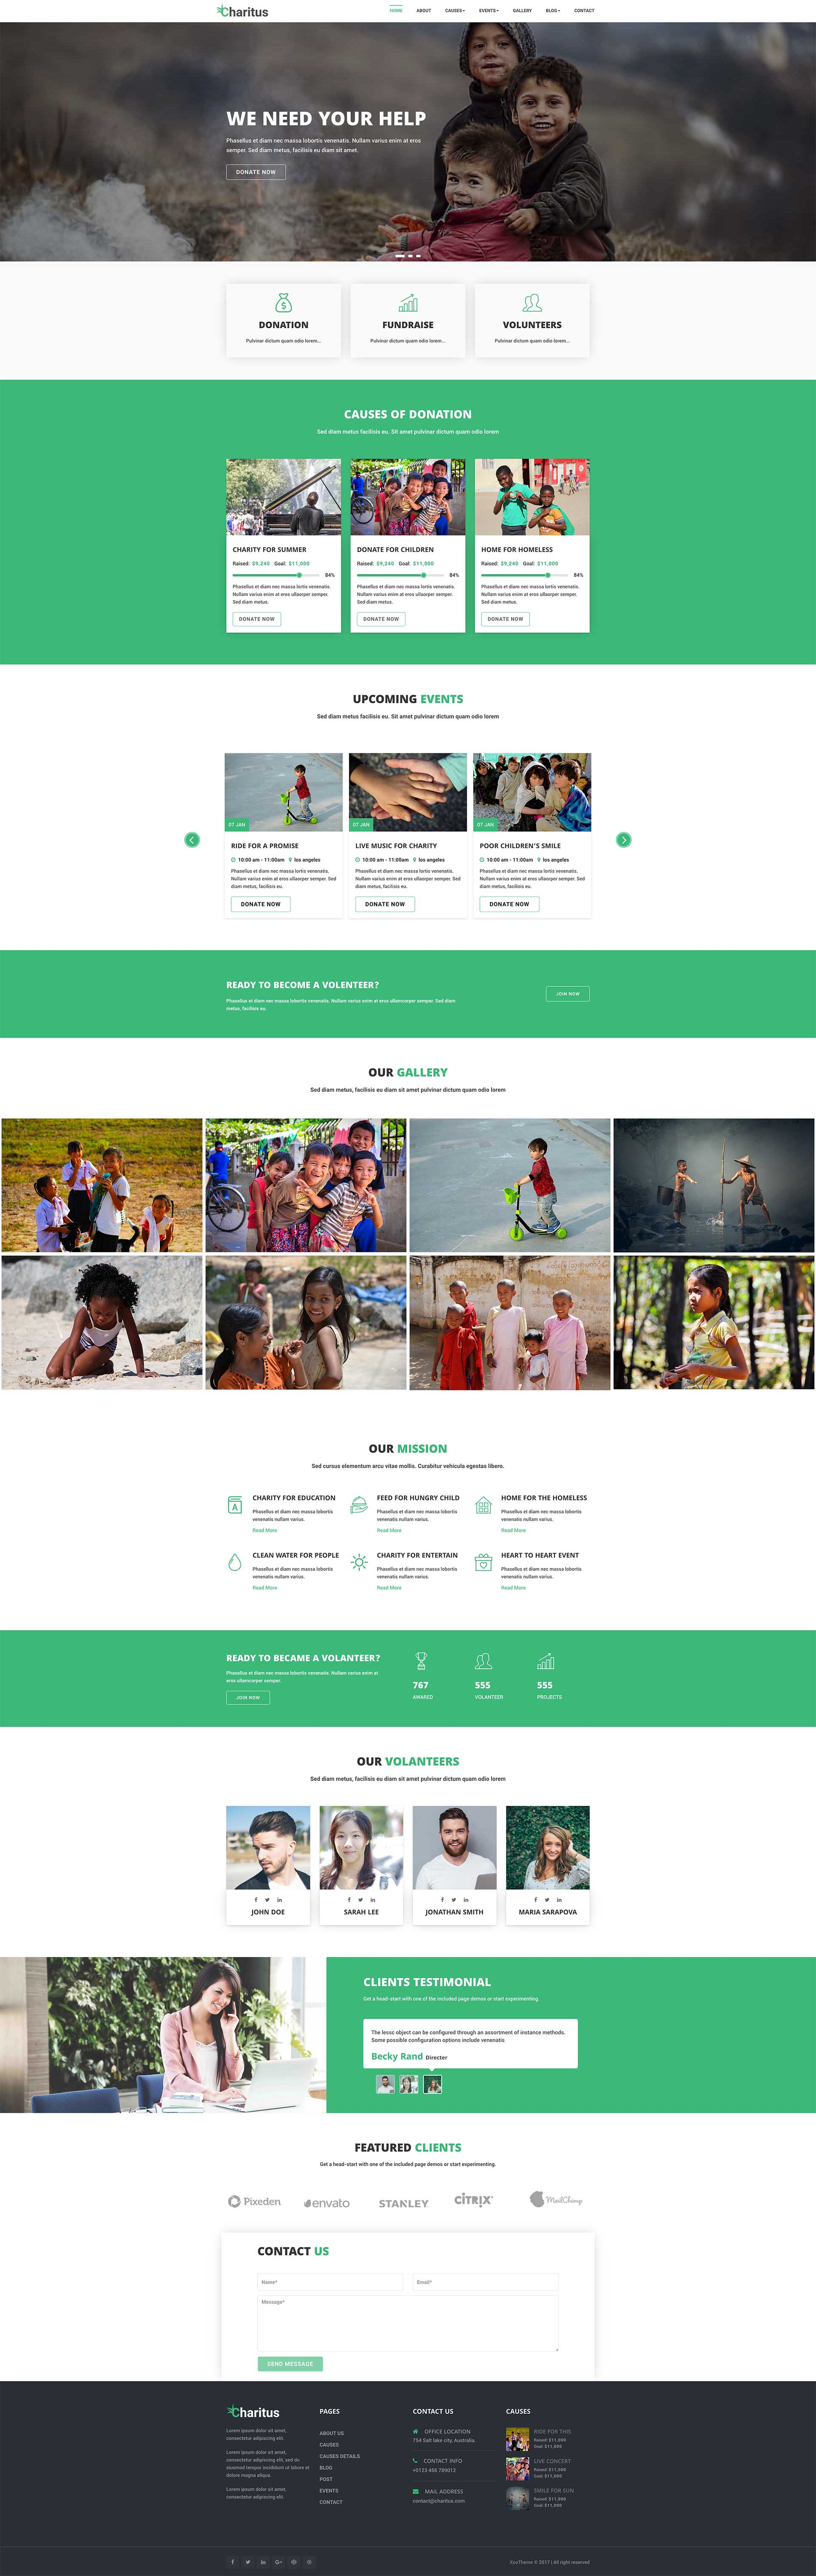 Charitus - Donation Non Profit Charity Website Bootstrap Template by ...